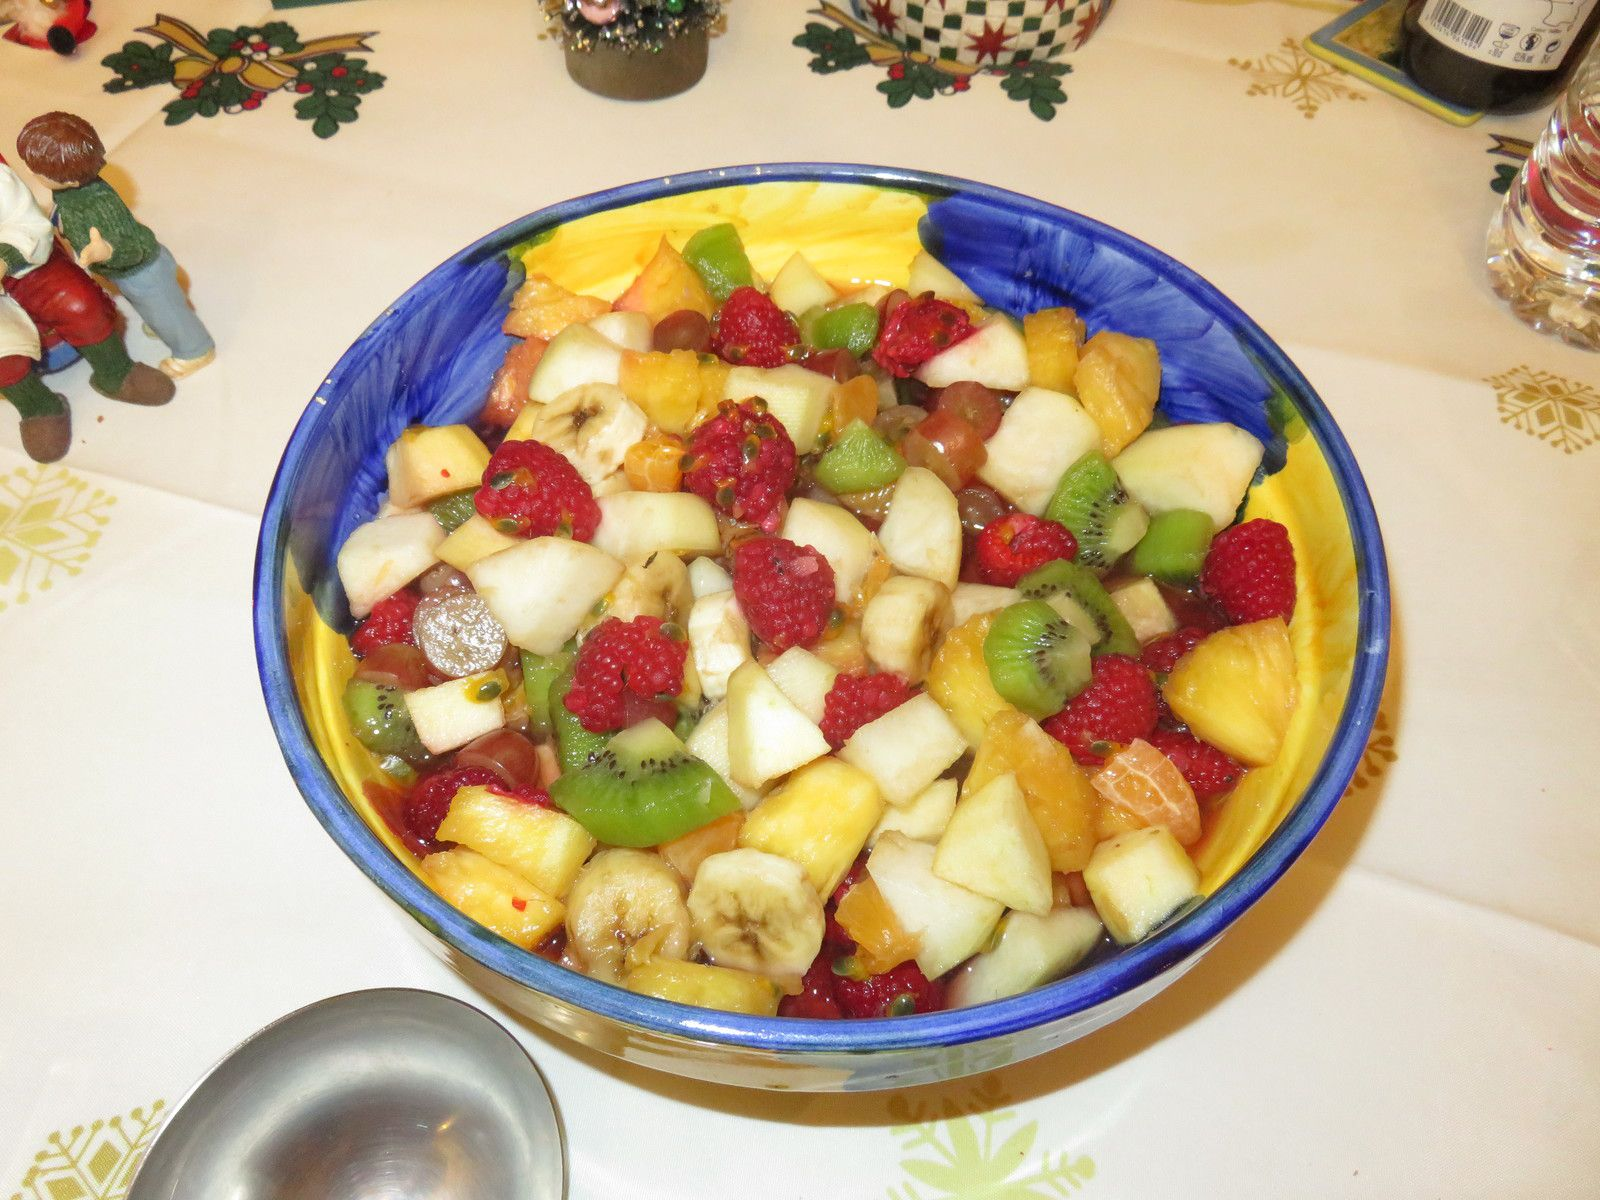 SALADE DE FRUITS AU KIRSCH